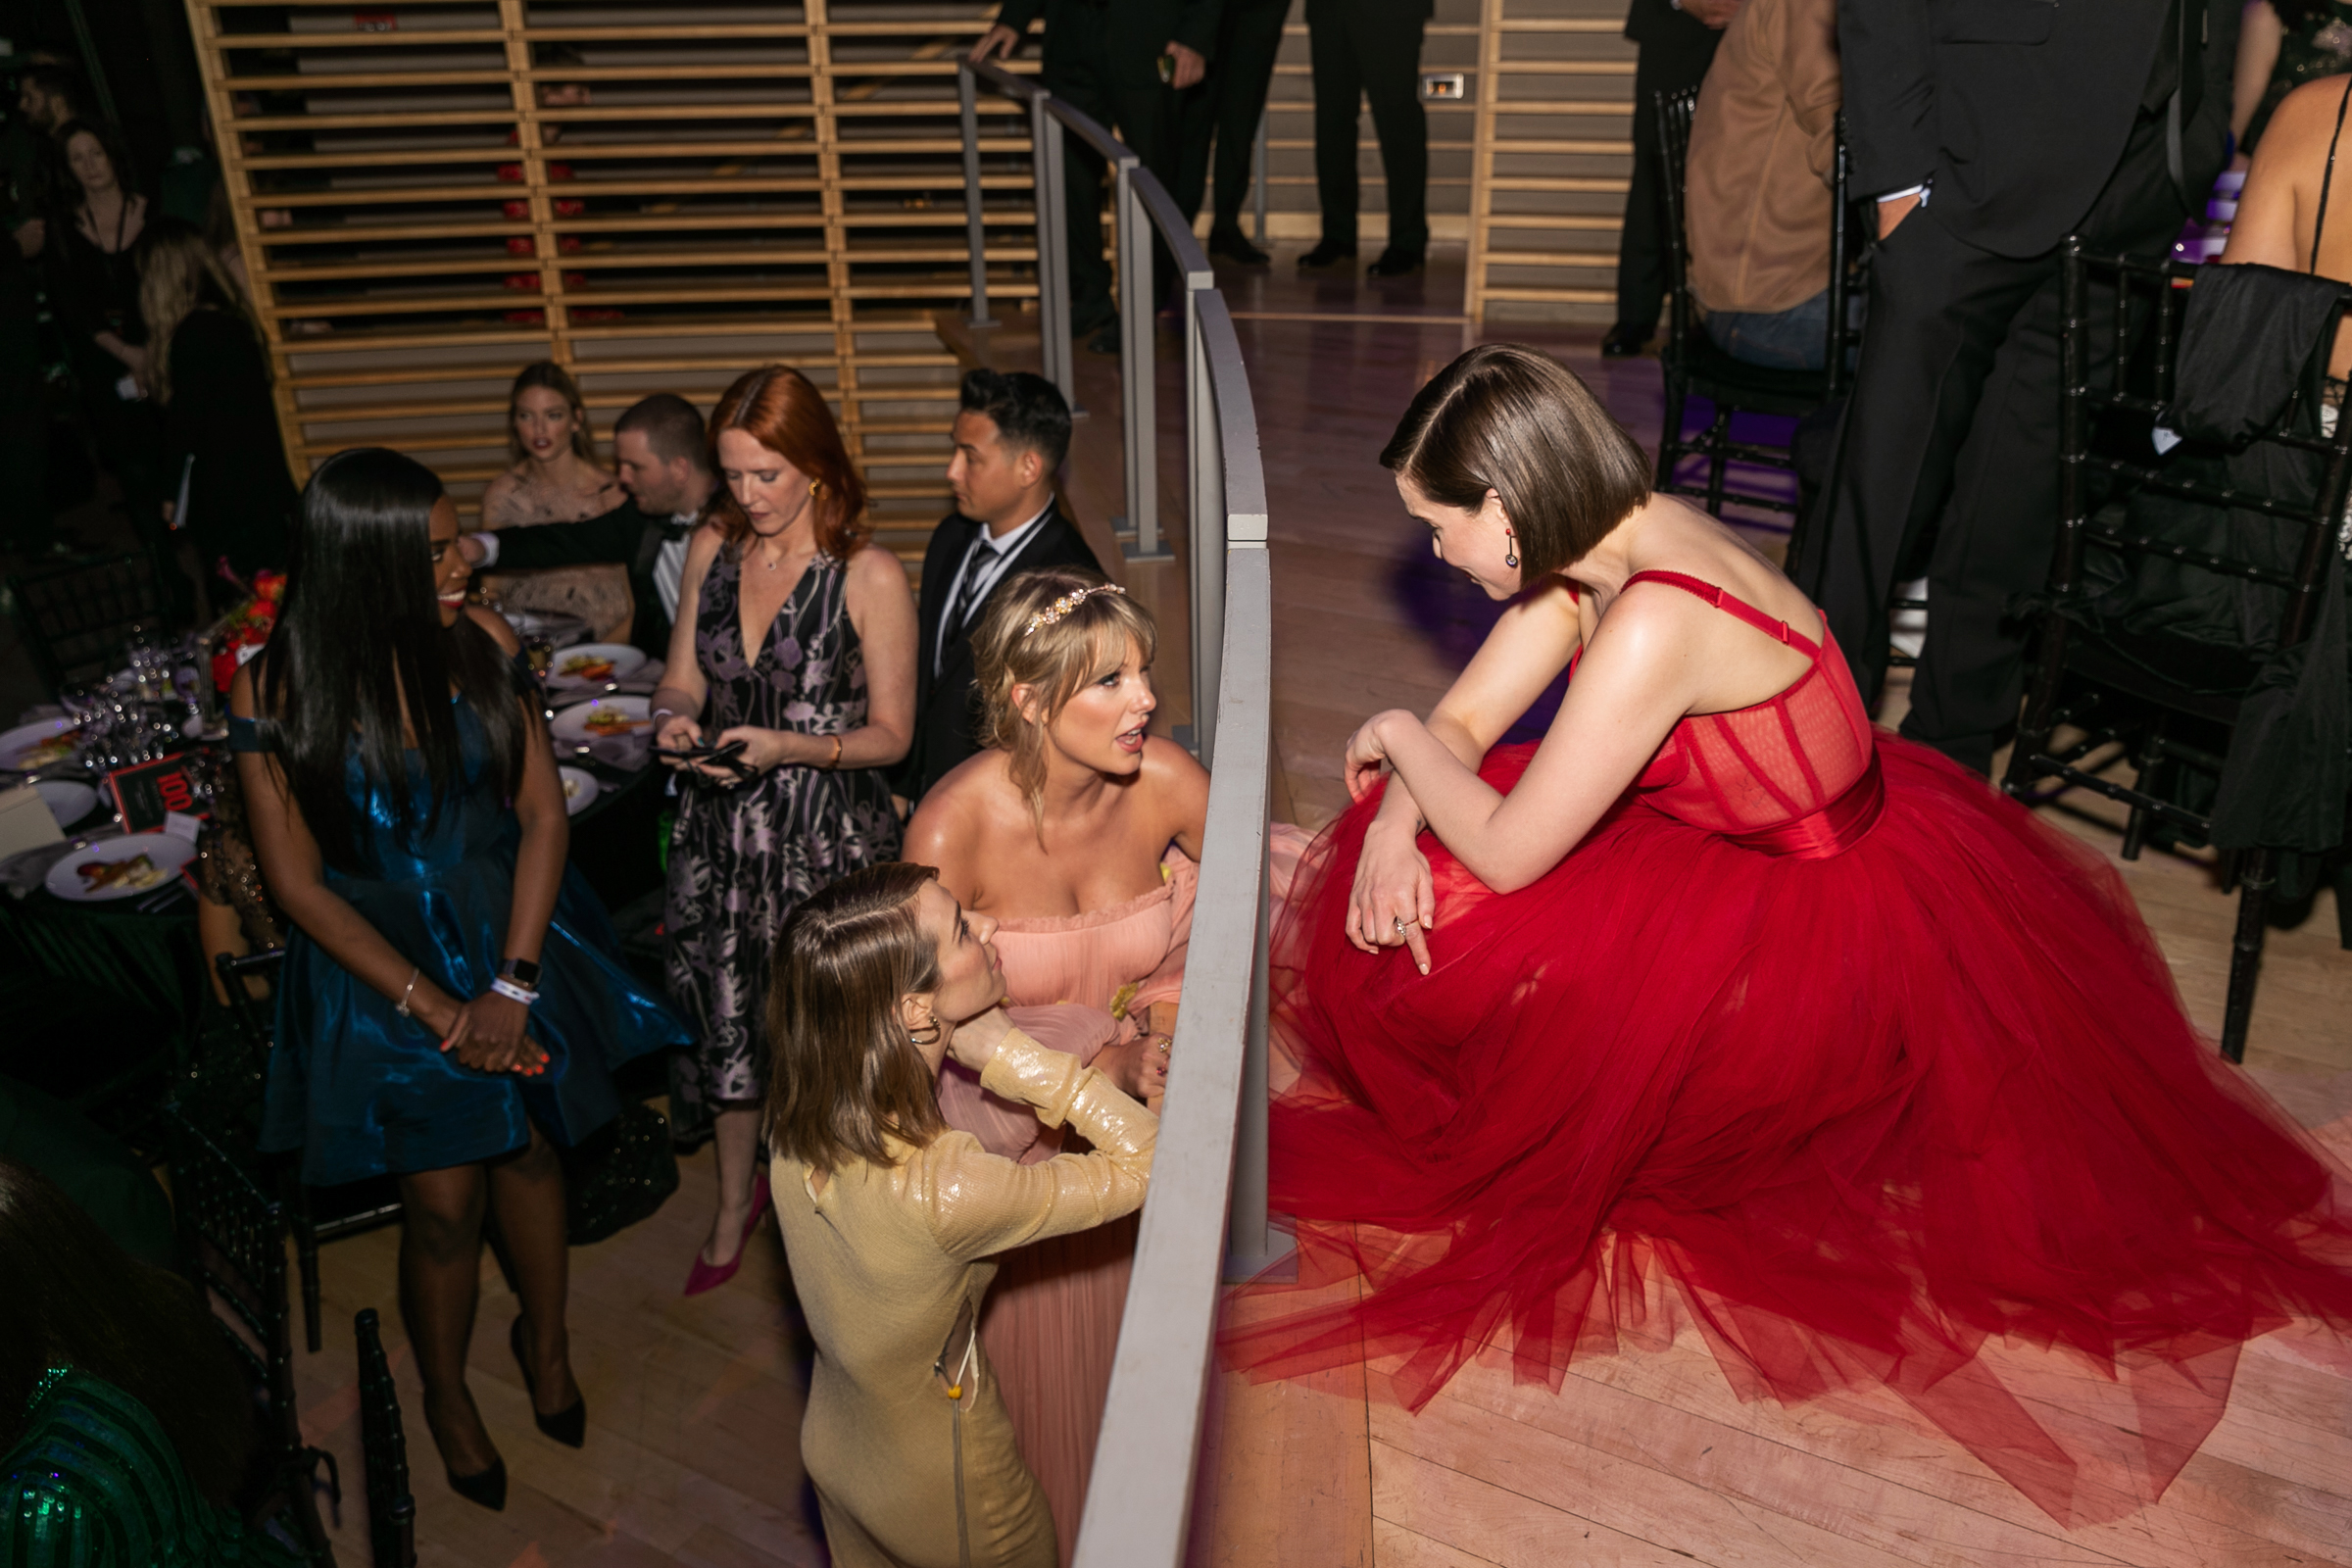 Taylor Swift and Emilia Clarke at the Time 100 Gala at Jazz at Lincoln Center in New York City on April 23, 2019.